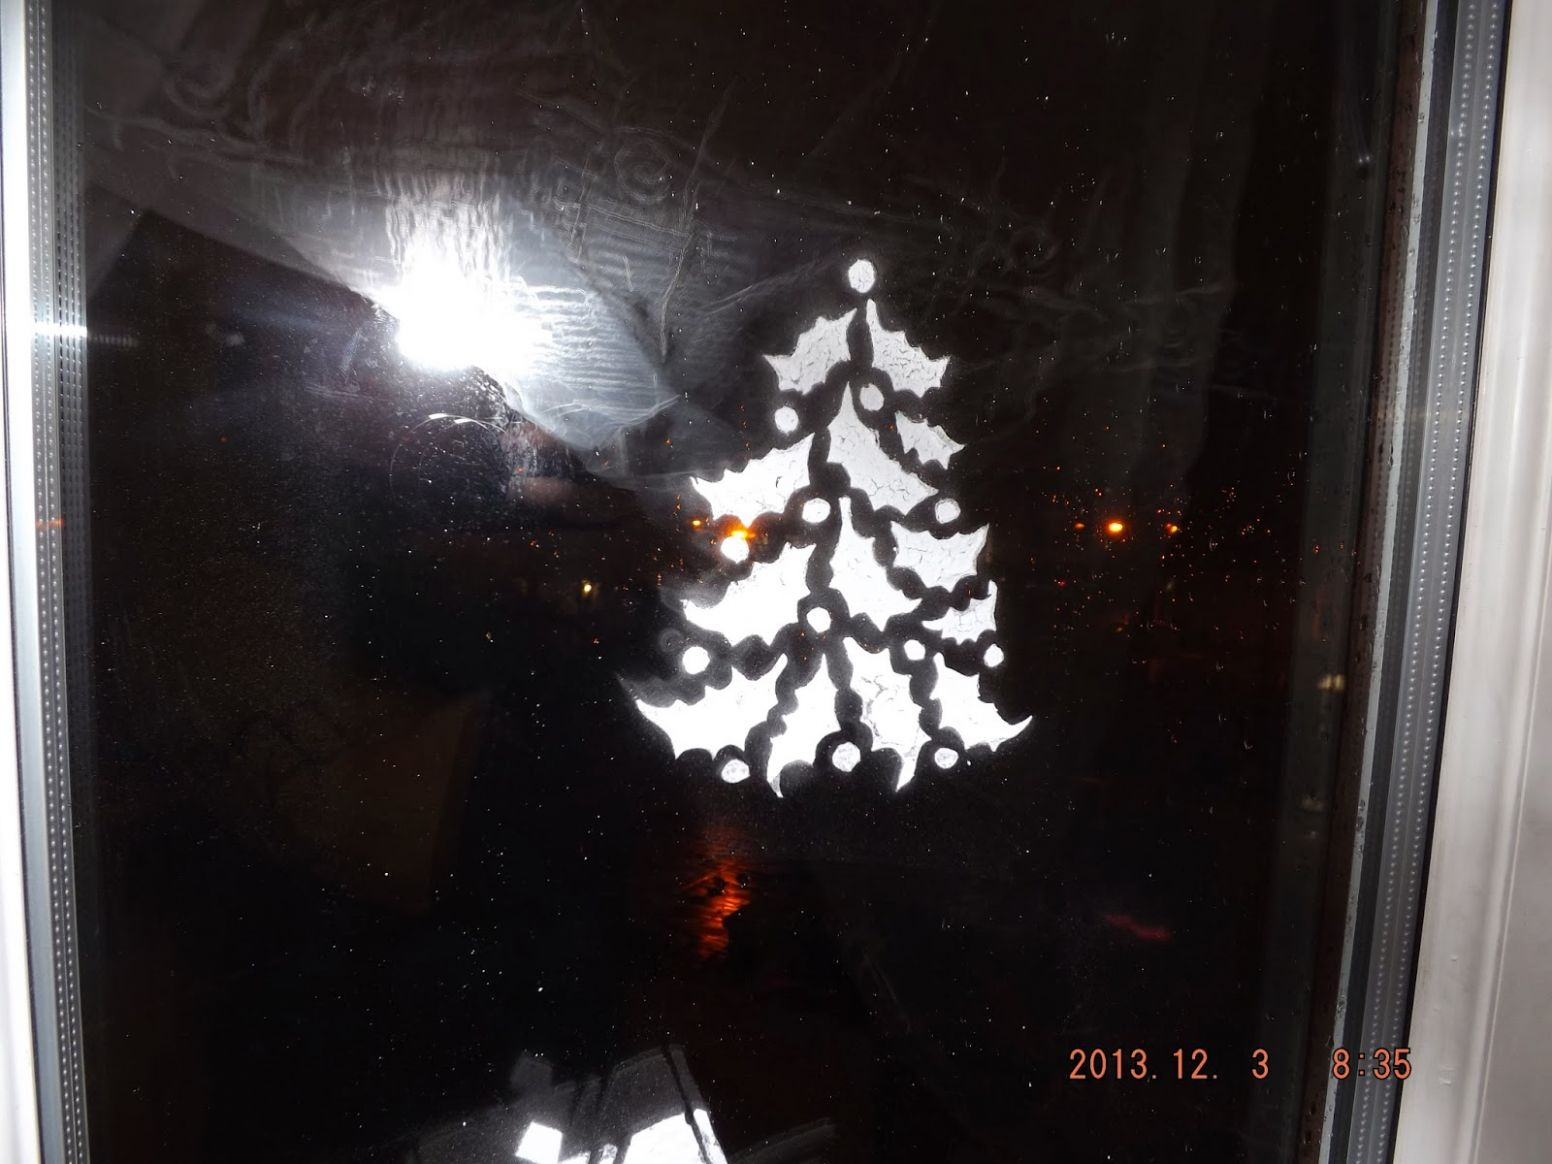 Between Two Wor(l)ds: Snow spray decoration for windows 10